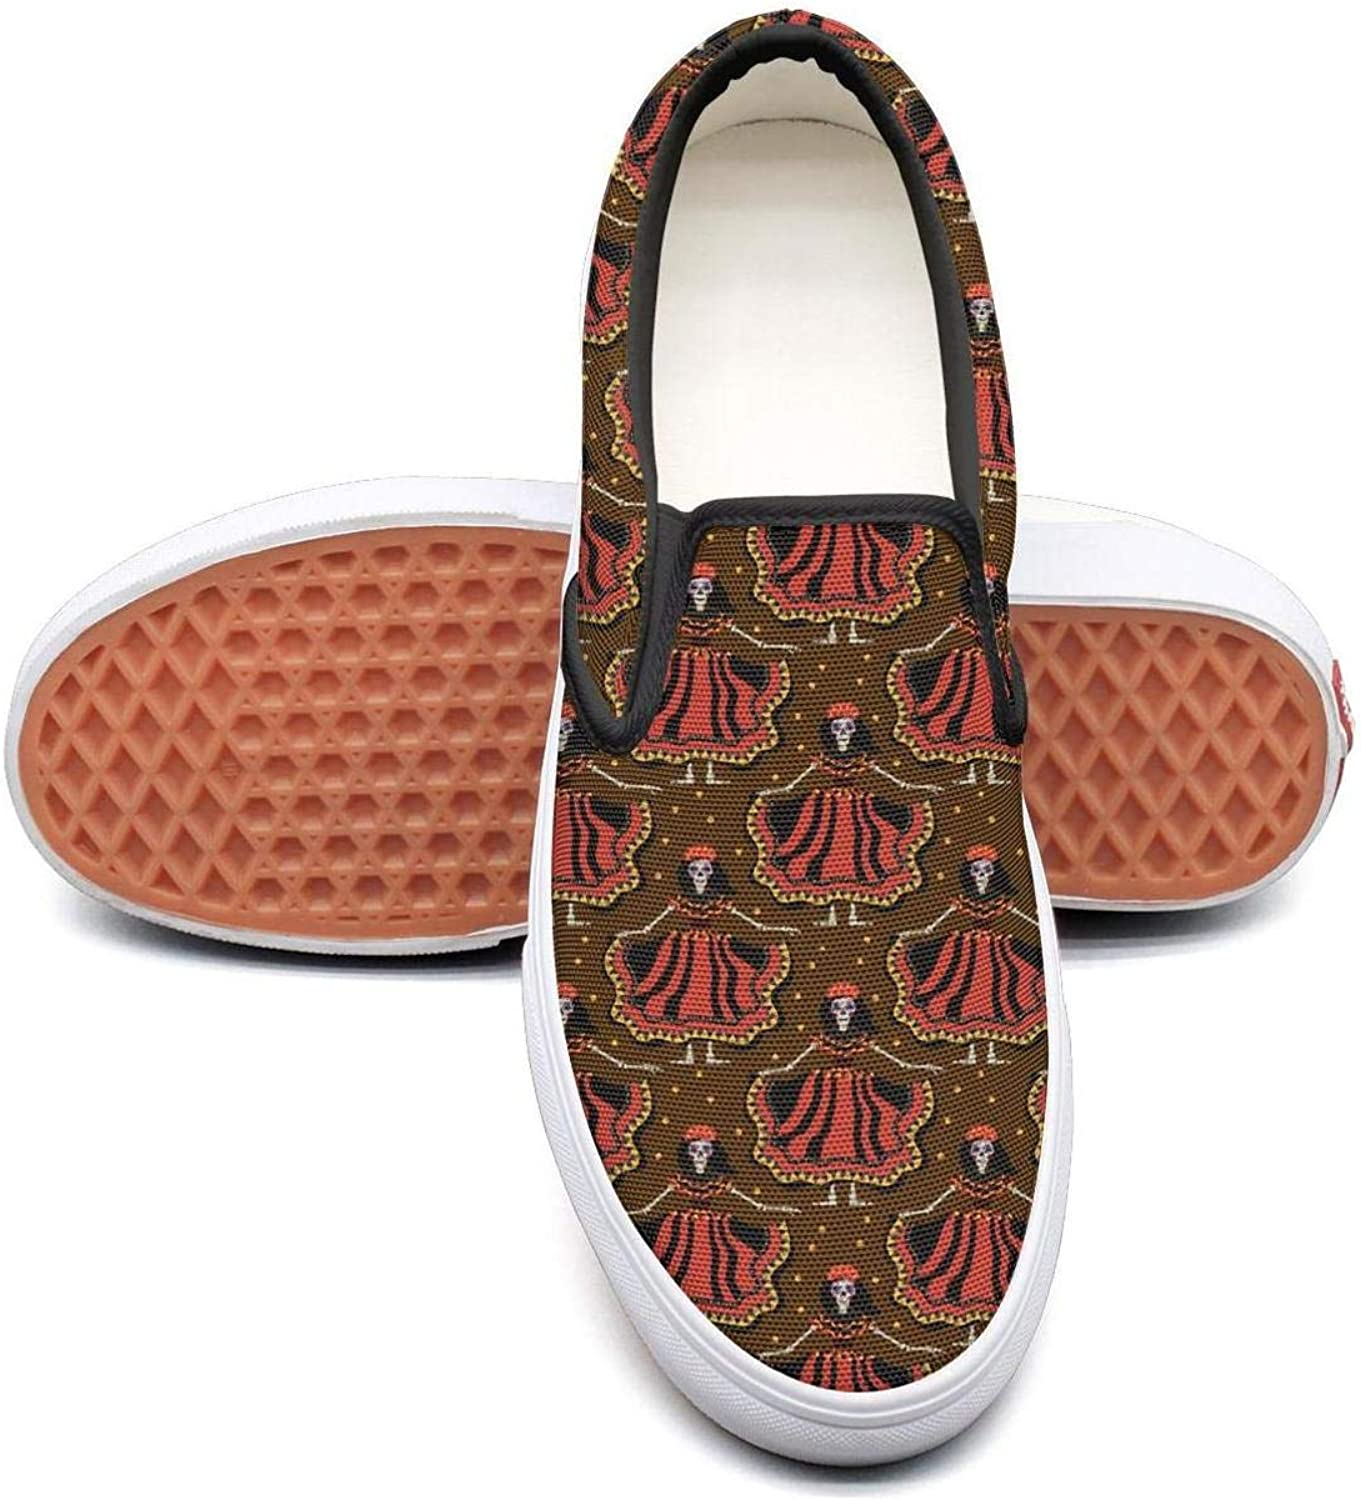 Brown Mexican colorful Skull Makeup Design Slip On Superior Comfort Loafers Canvas shoes Women Round Toe